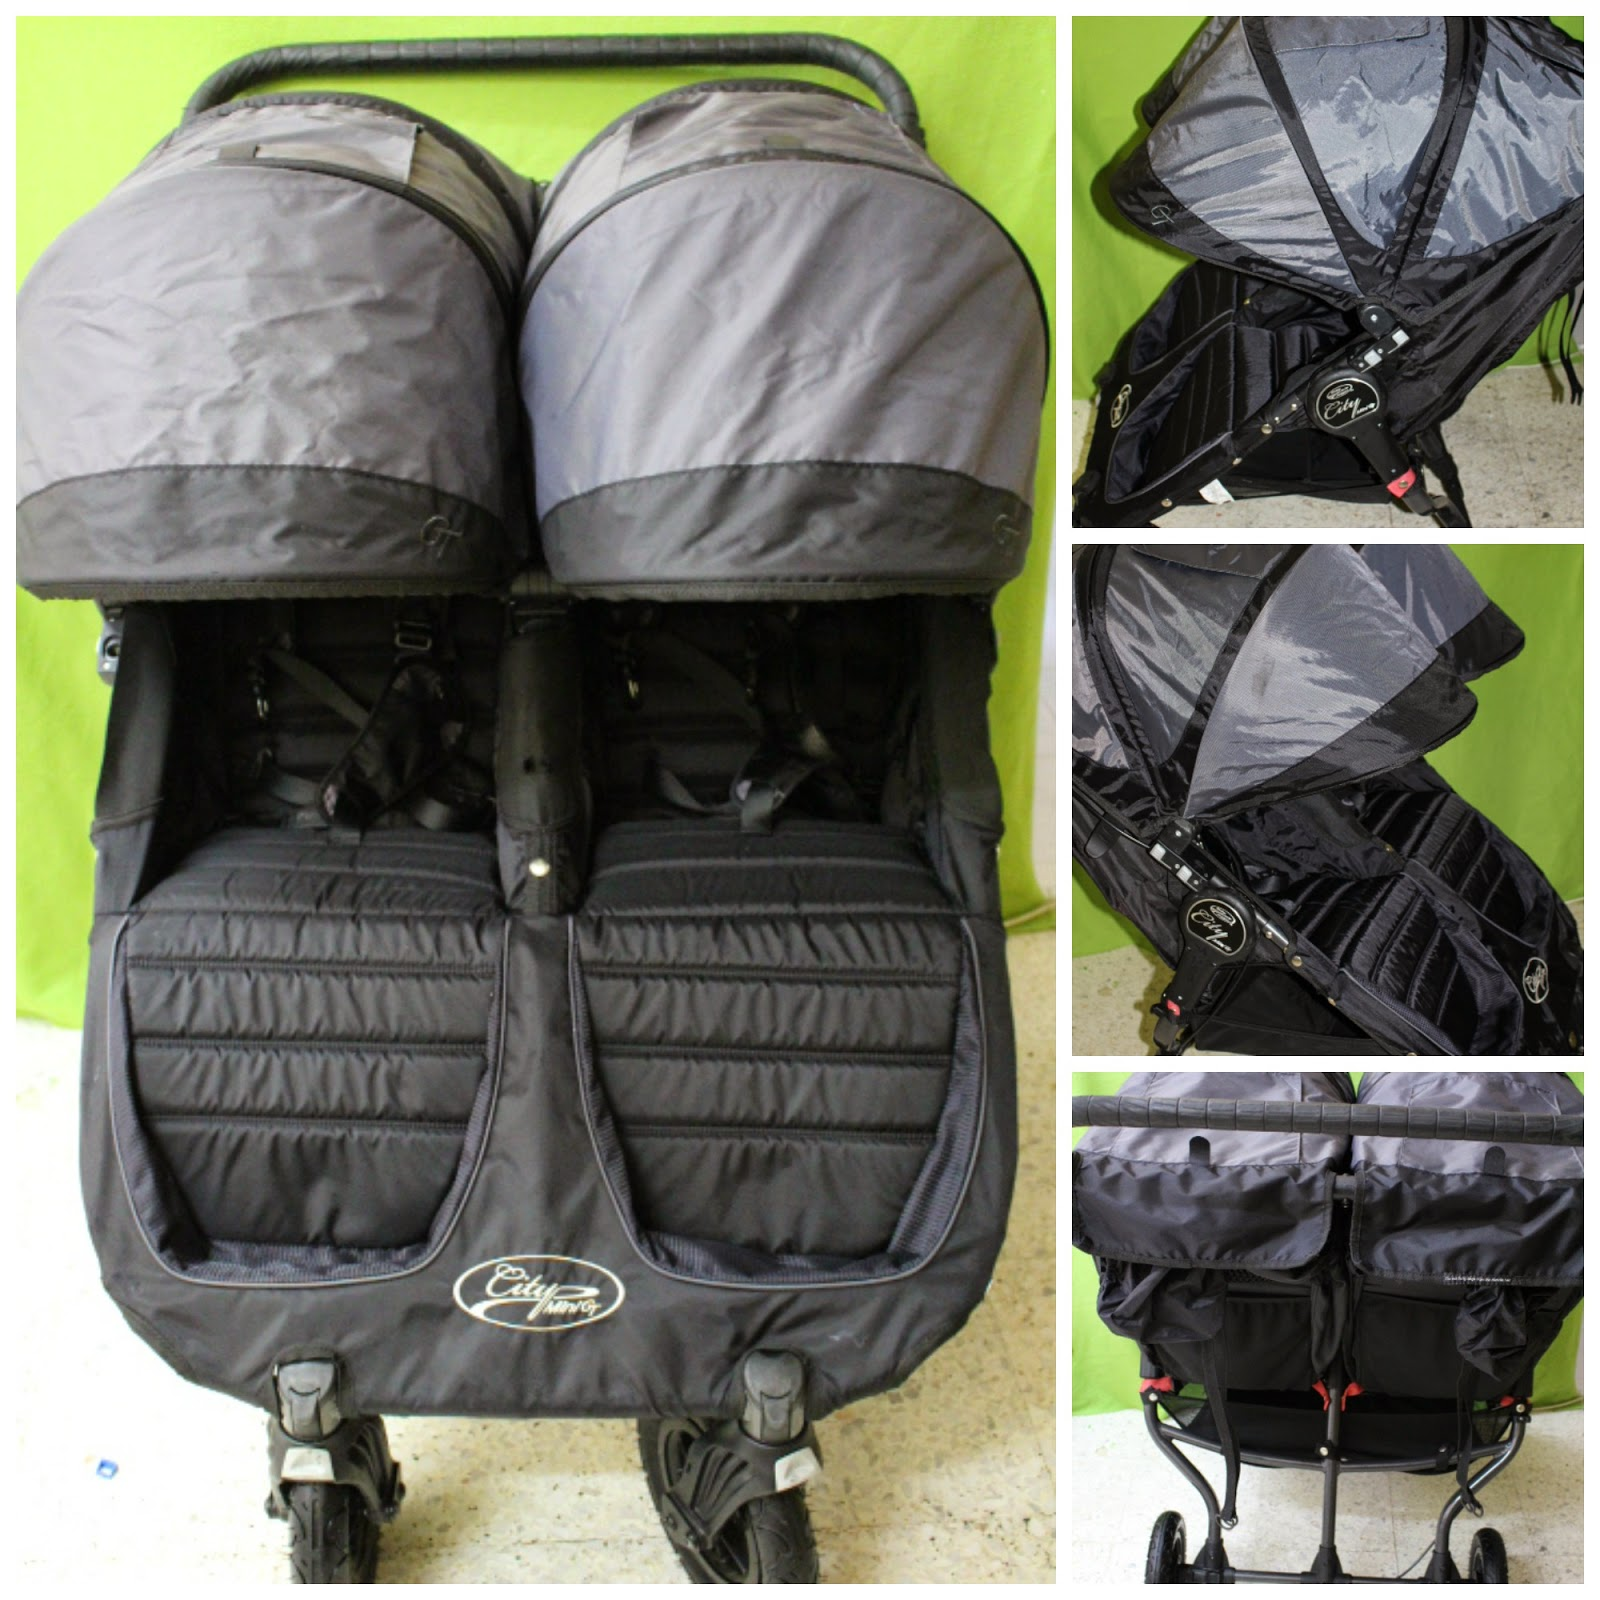 Amy Sweety Store: BABY JOGGER City Mini GT Double Stroller